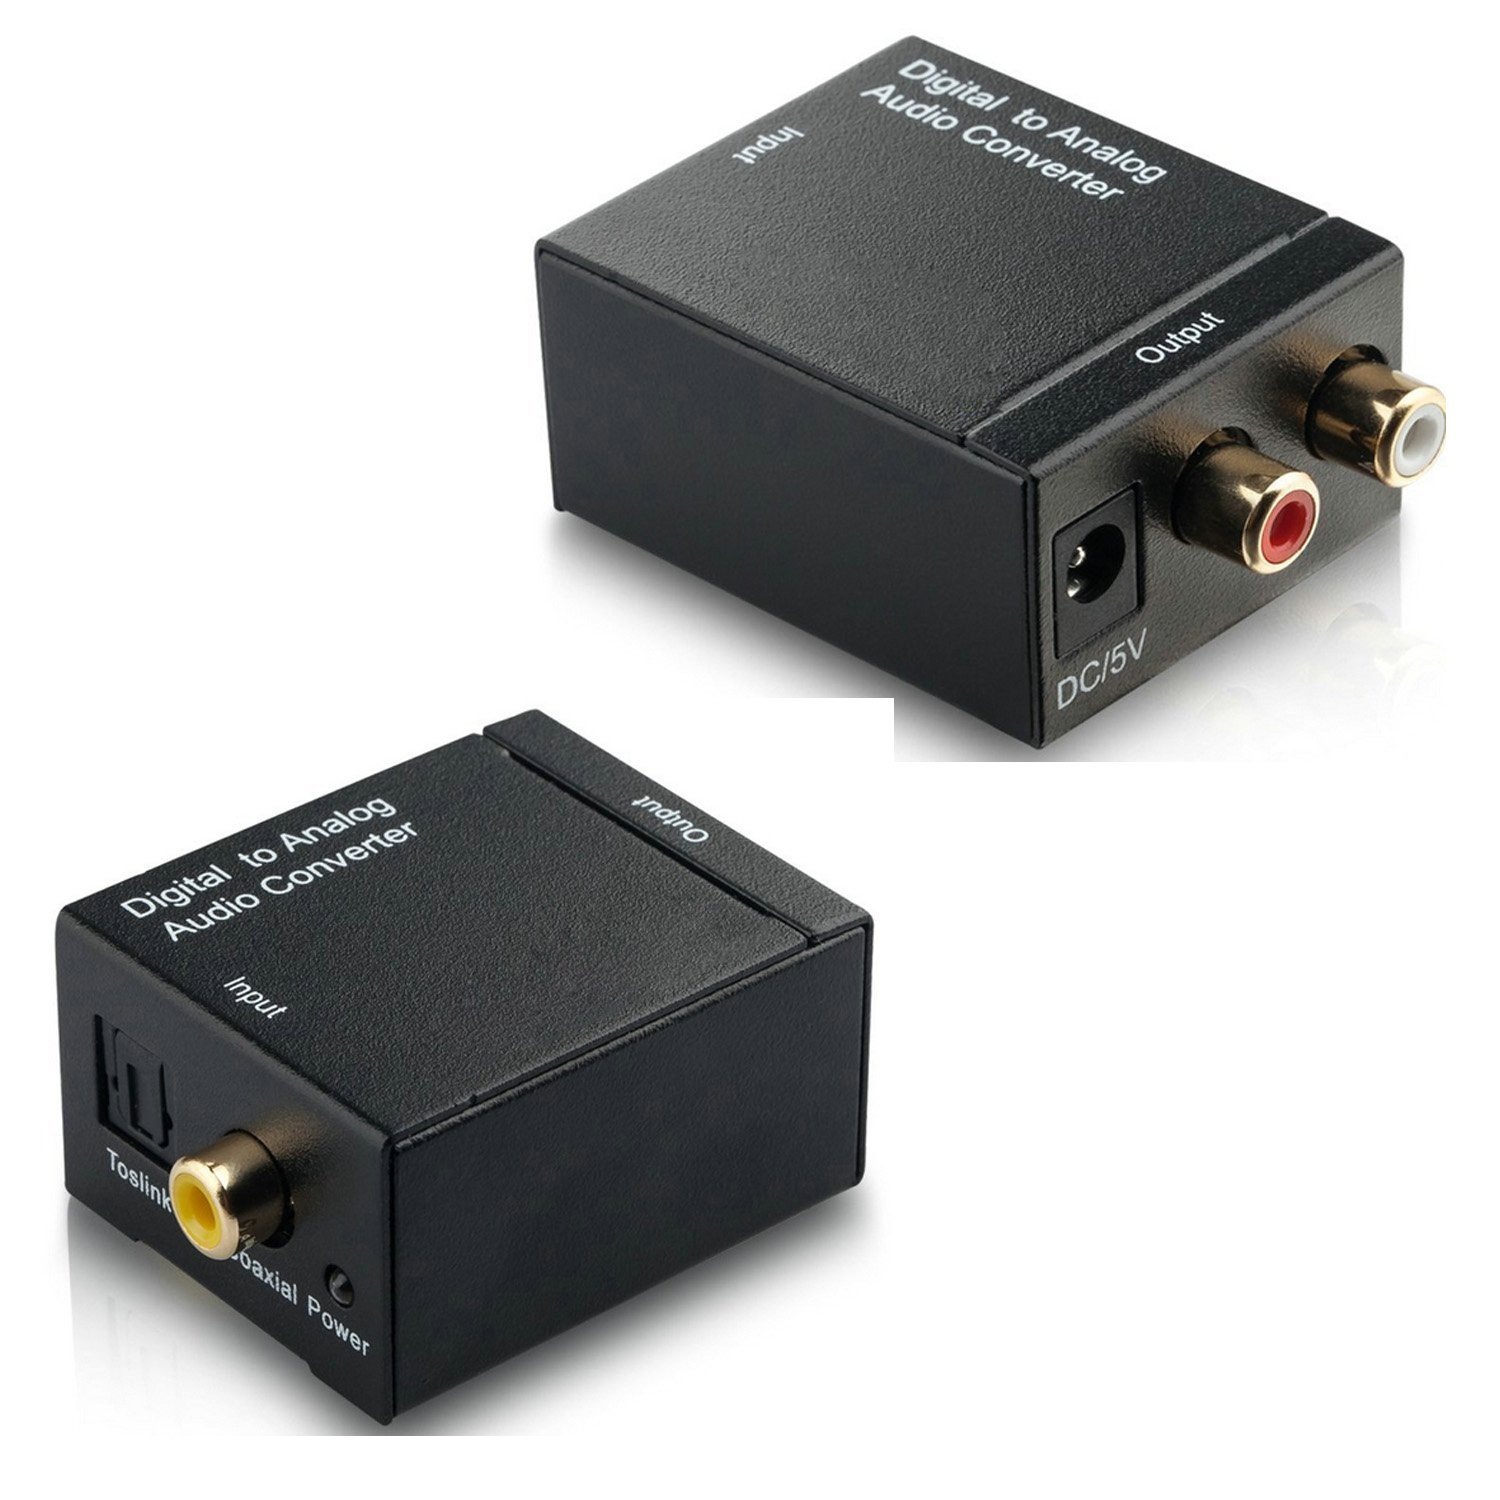 Amazon.com: Digital Optical Coaxial Toslink Signal to Analog Audio Converter RCA L/R output with Optical Toslink Cable RCA Stereo Female to Two RCA Male ...